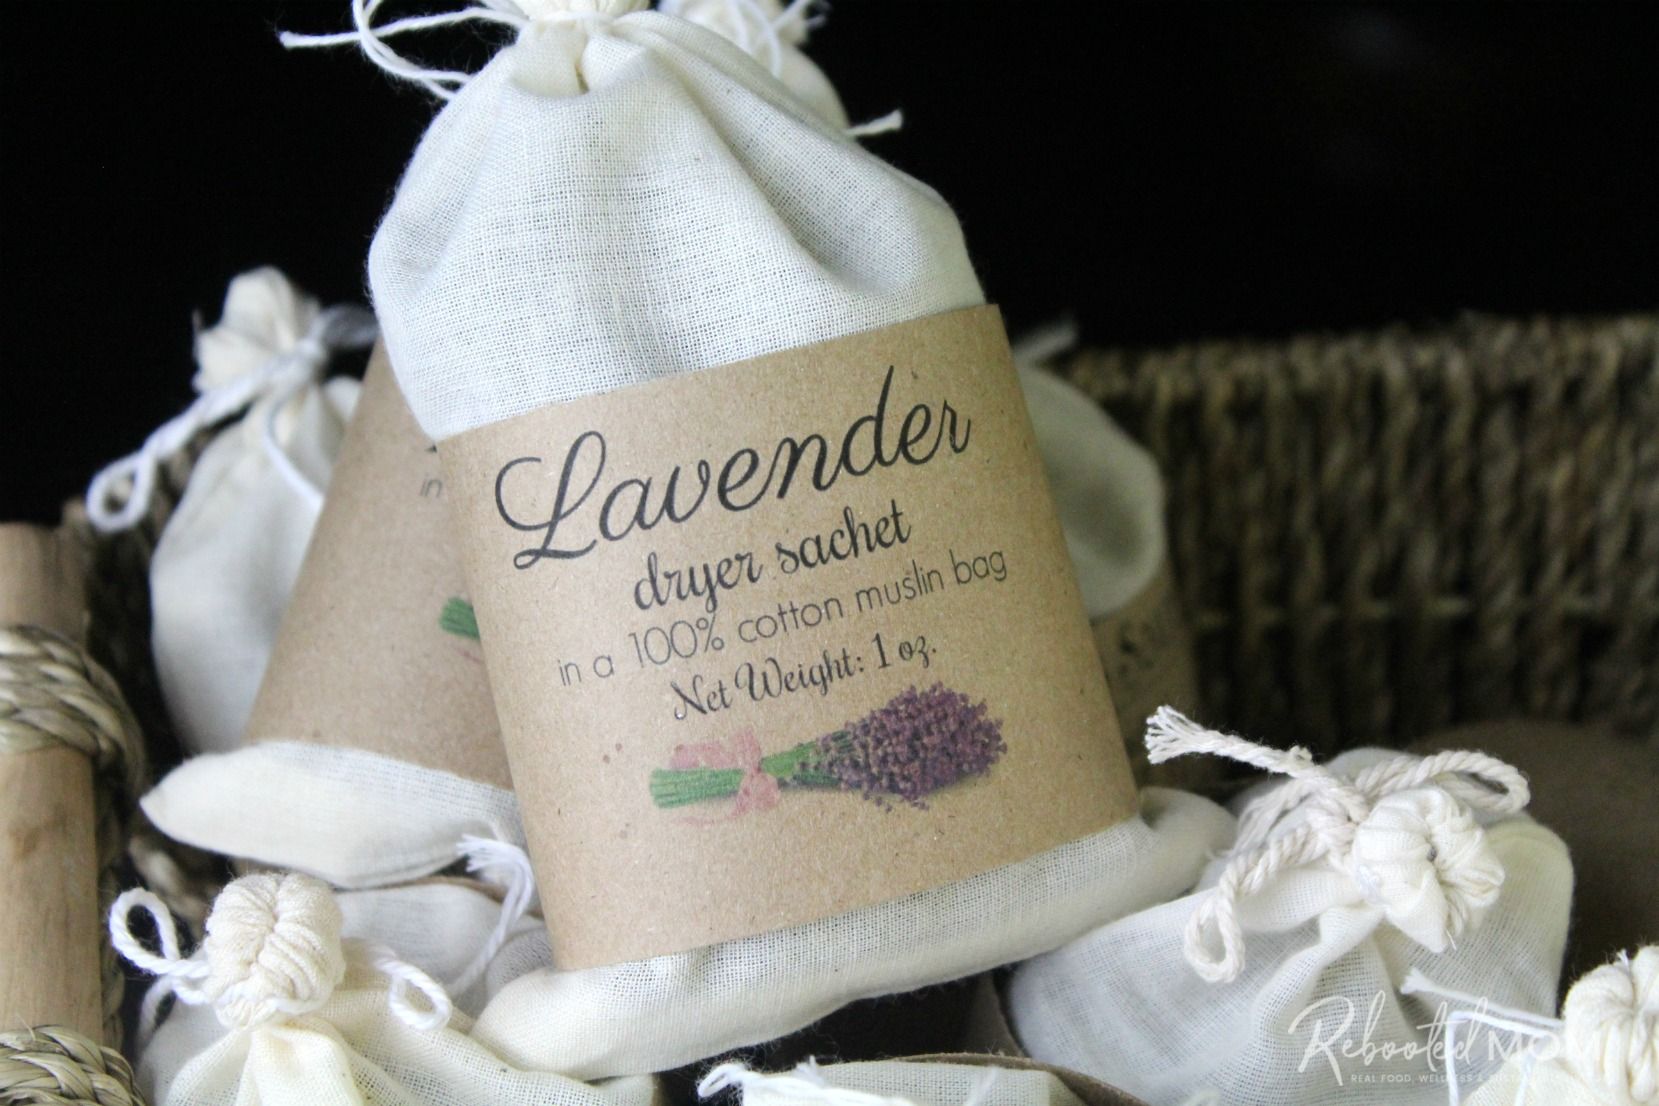 These herbal dryer sachets are a beautiful and healthy way to scent your laundry and they make wonderful gifts for friends, co-workers and even teachers!